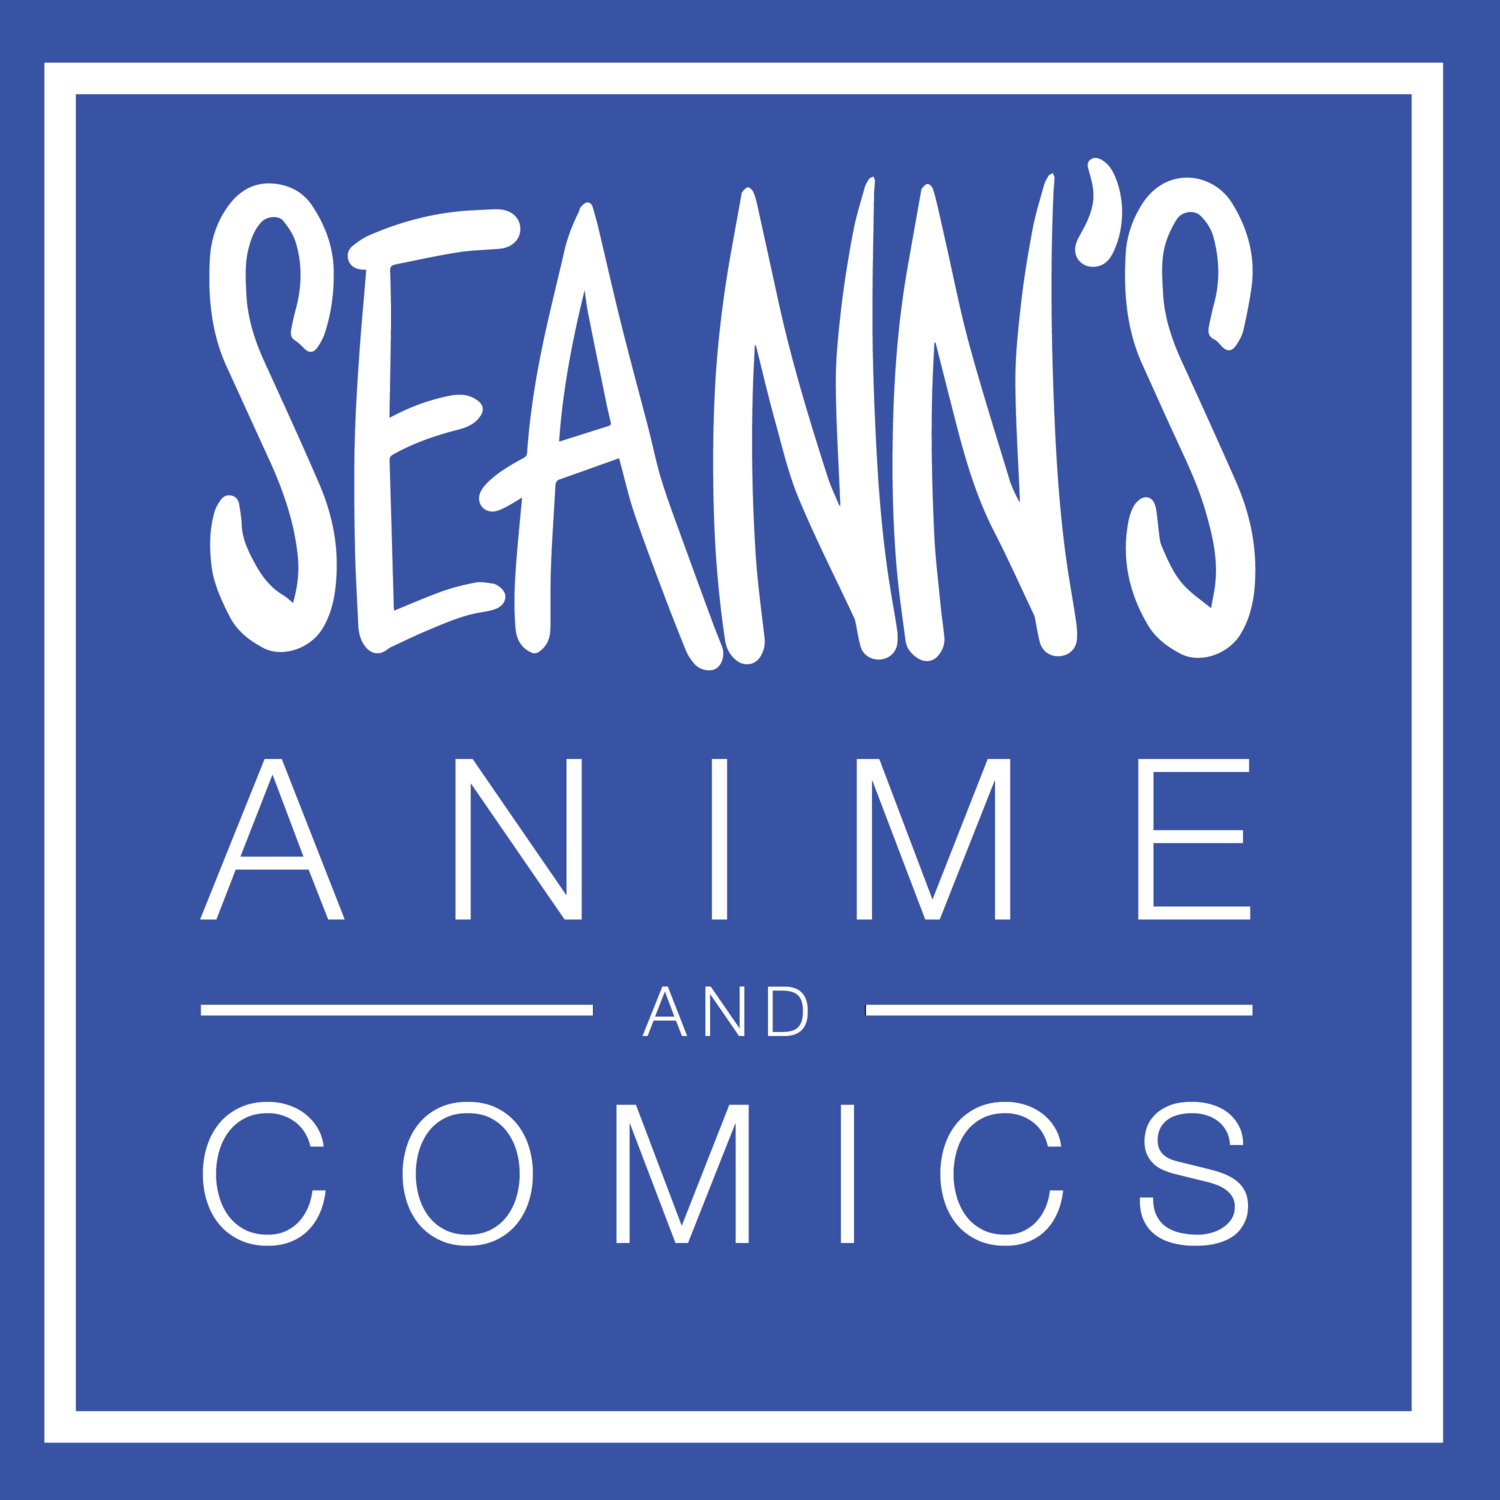 Seann's Anime and Comics